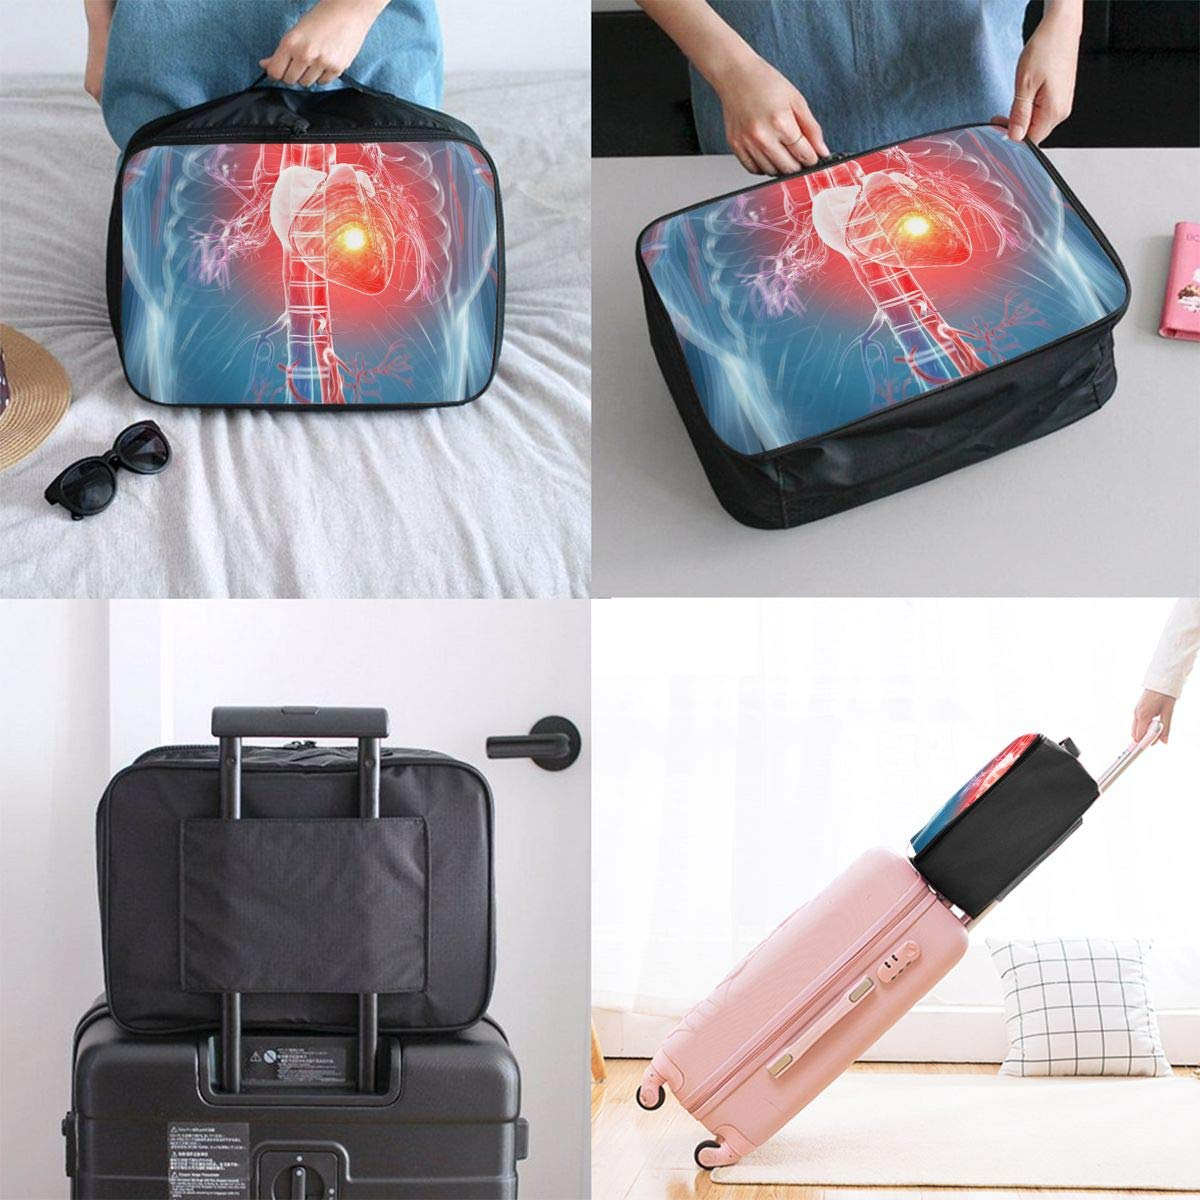 Travel Luggage Duffle Bag Lightweight Portable Handbag Heart Print Large Capacity Waterproof Foldable Storage Tote